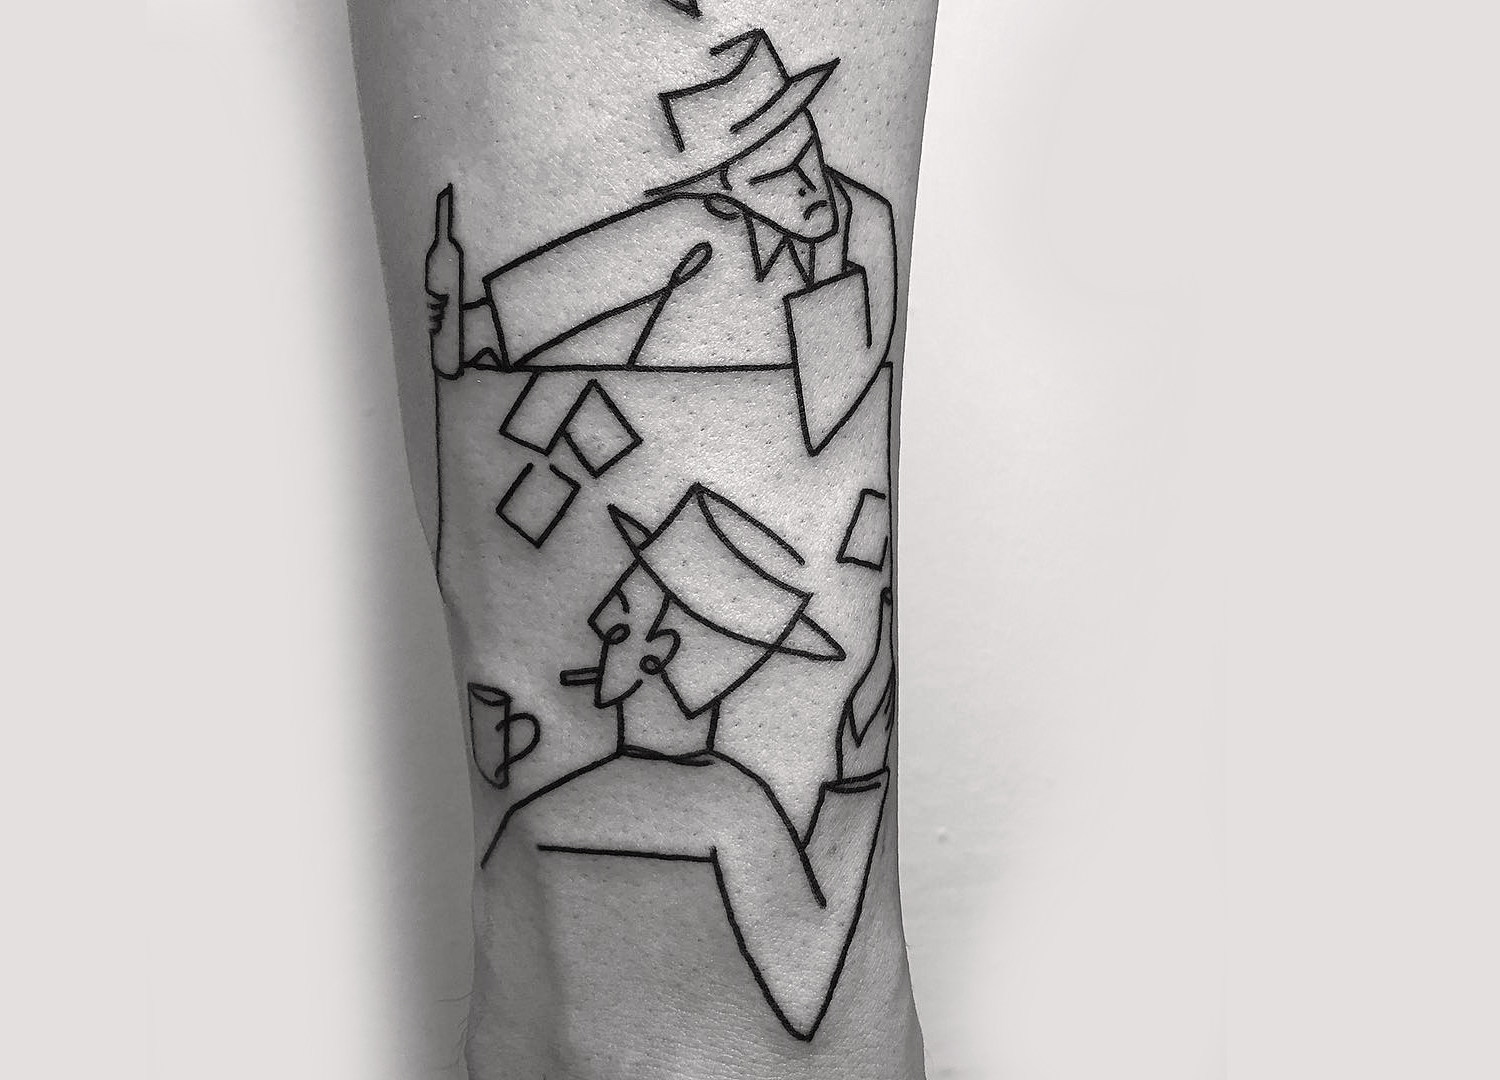 Caleb Kilby line art tattoo